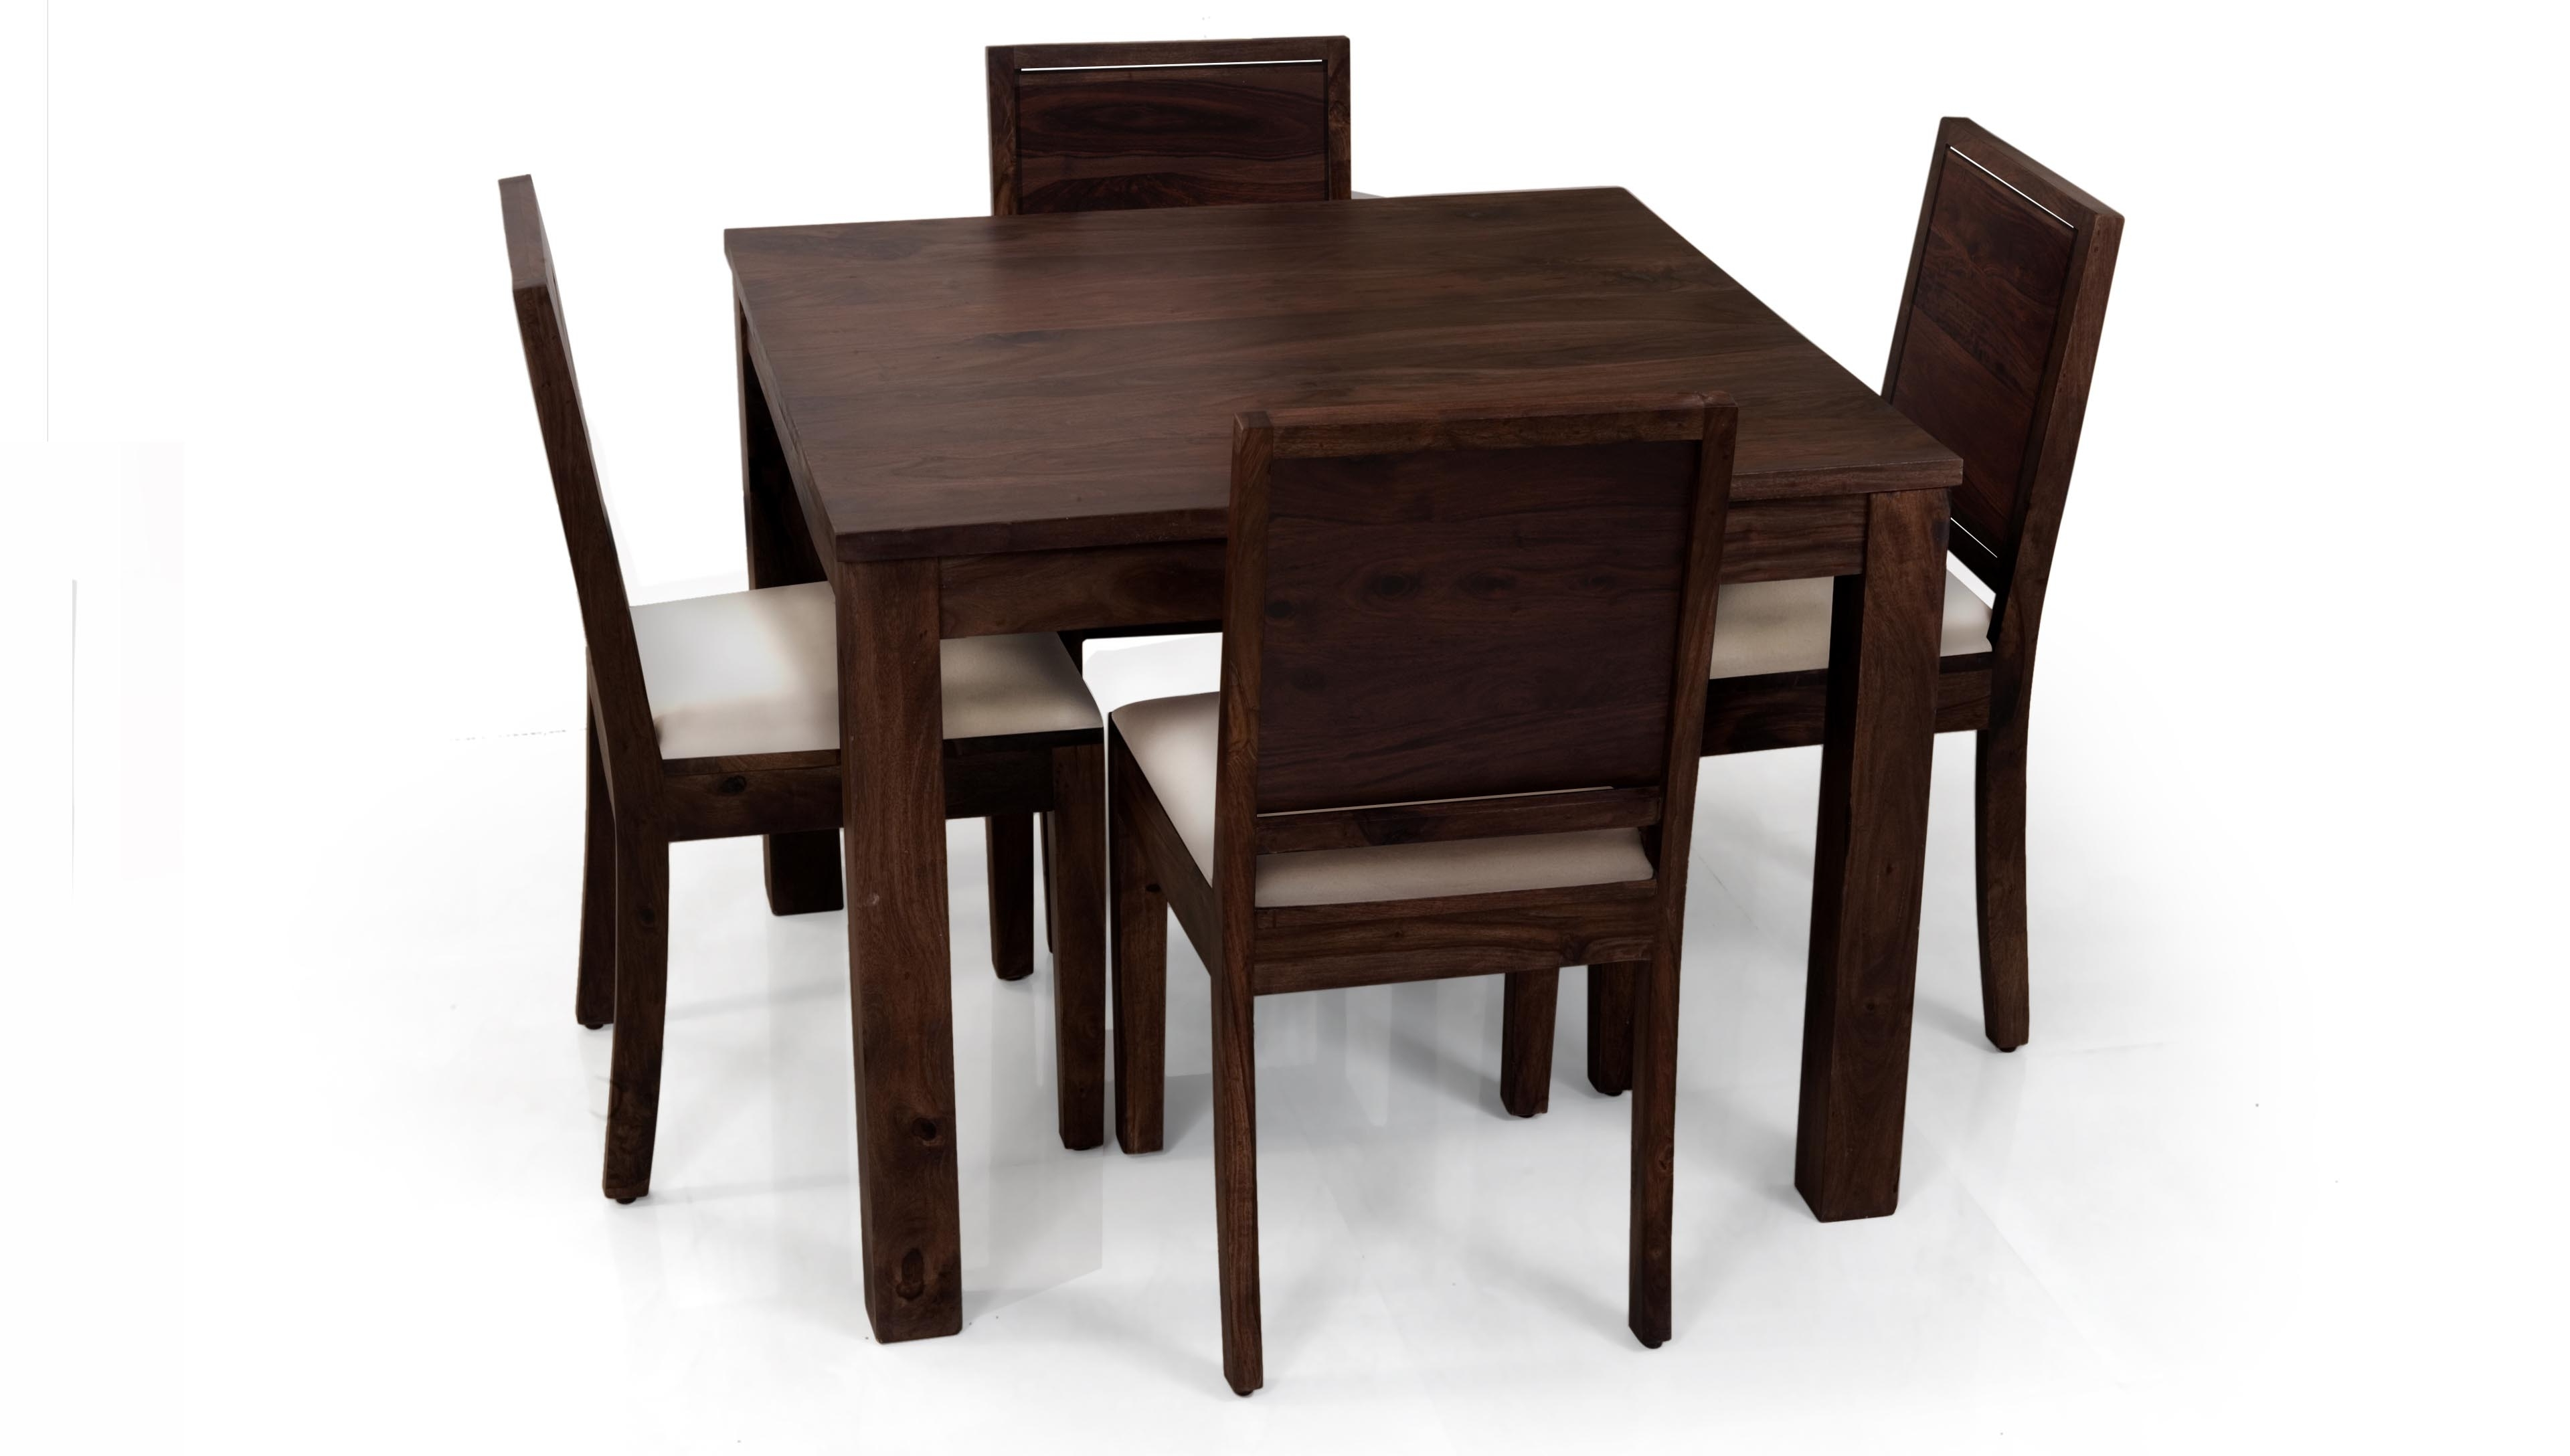 Most Popular 4 Seat Dining Tables Throughout Unique Small Dining Table And Chairs For 4 Light Of Rush Seat Dining (View 15 of 25)